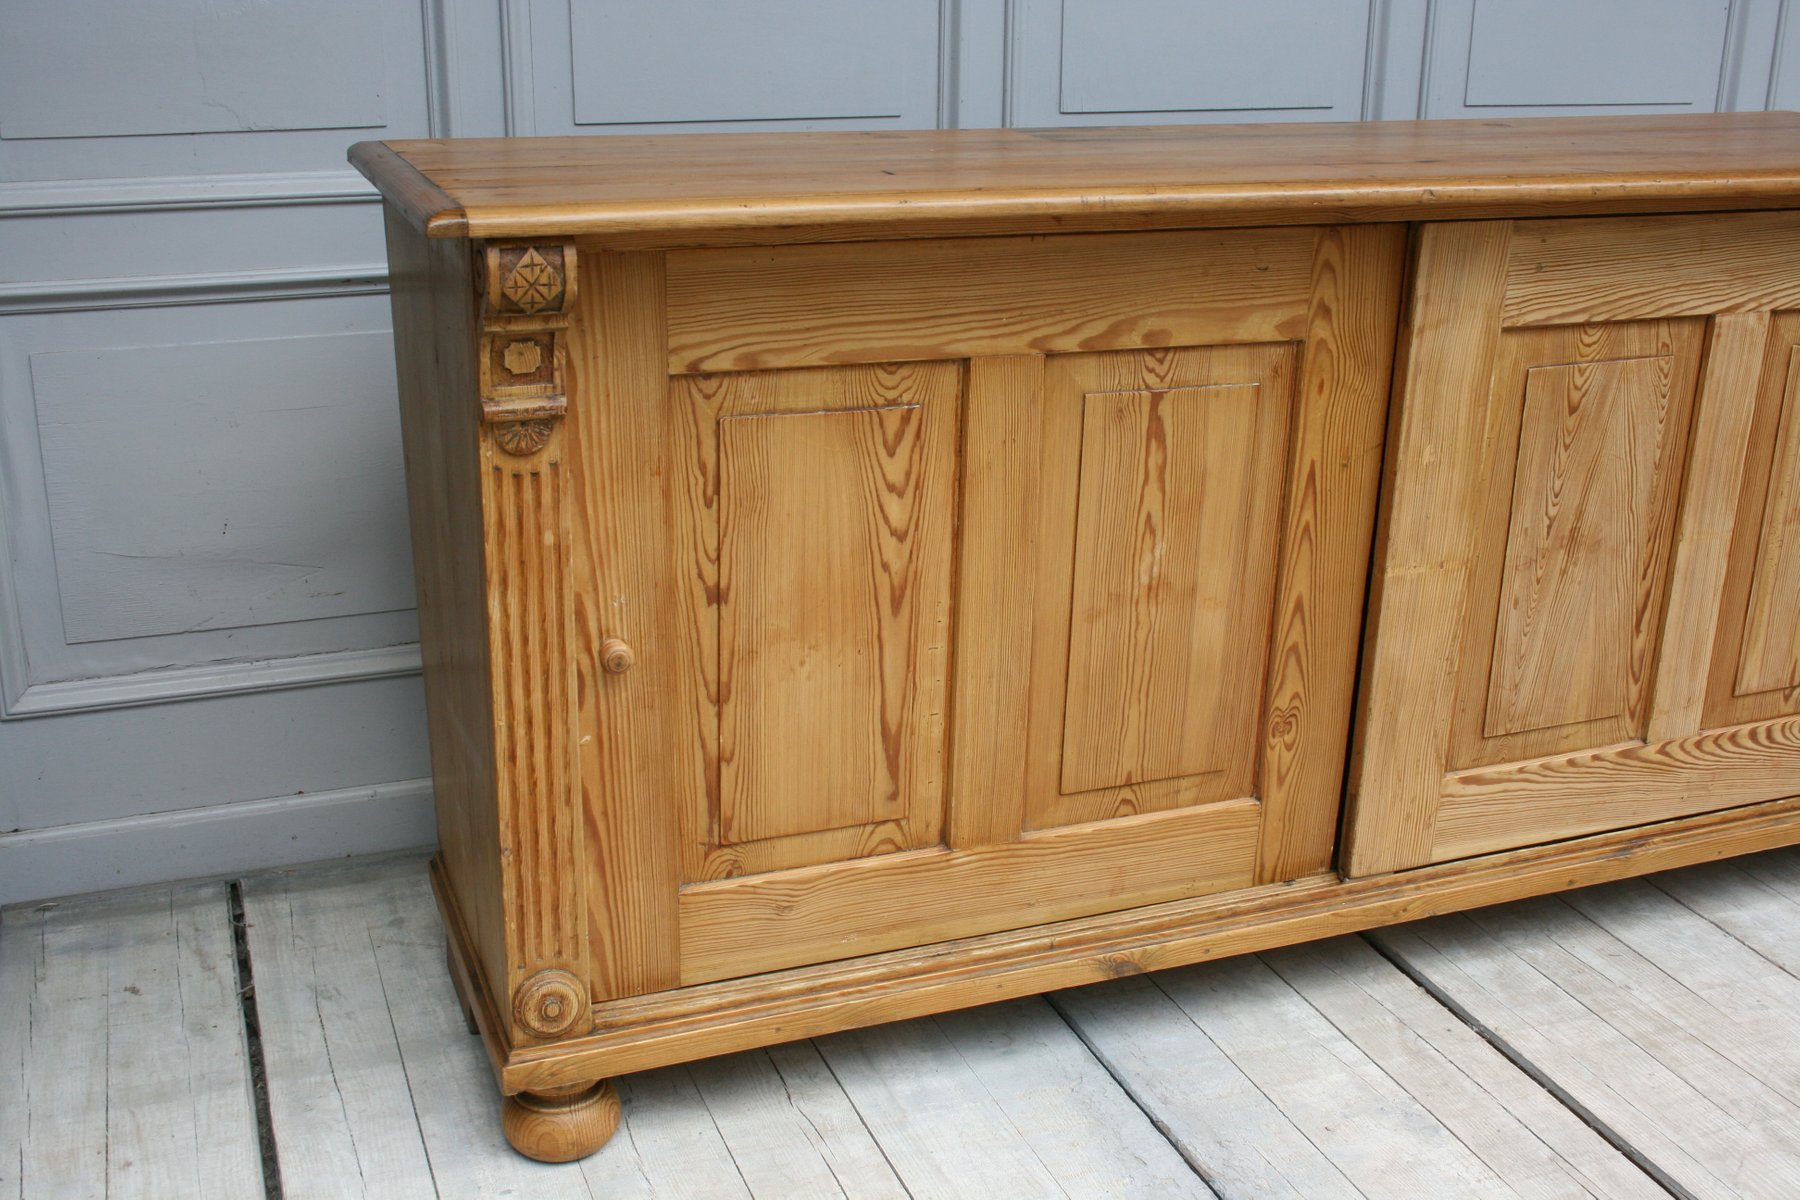 Vintage Sideboard Sliding Doors Antique Wilhelminian Sideboard With Sliding Doors For Sale